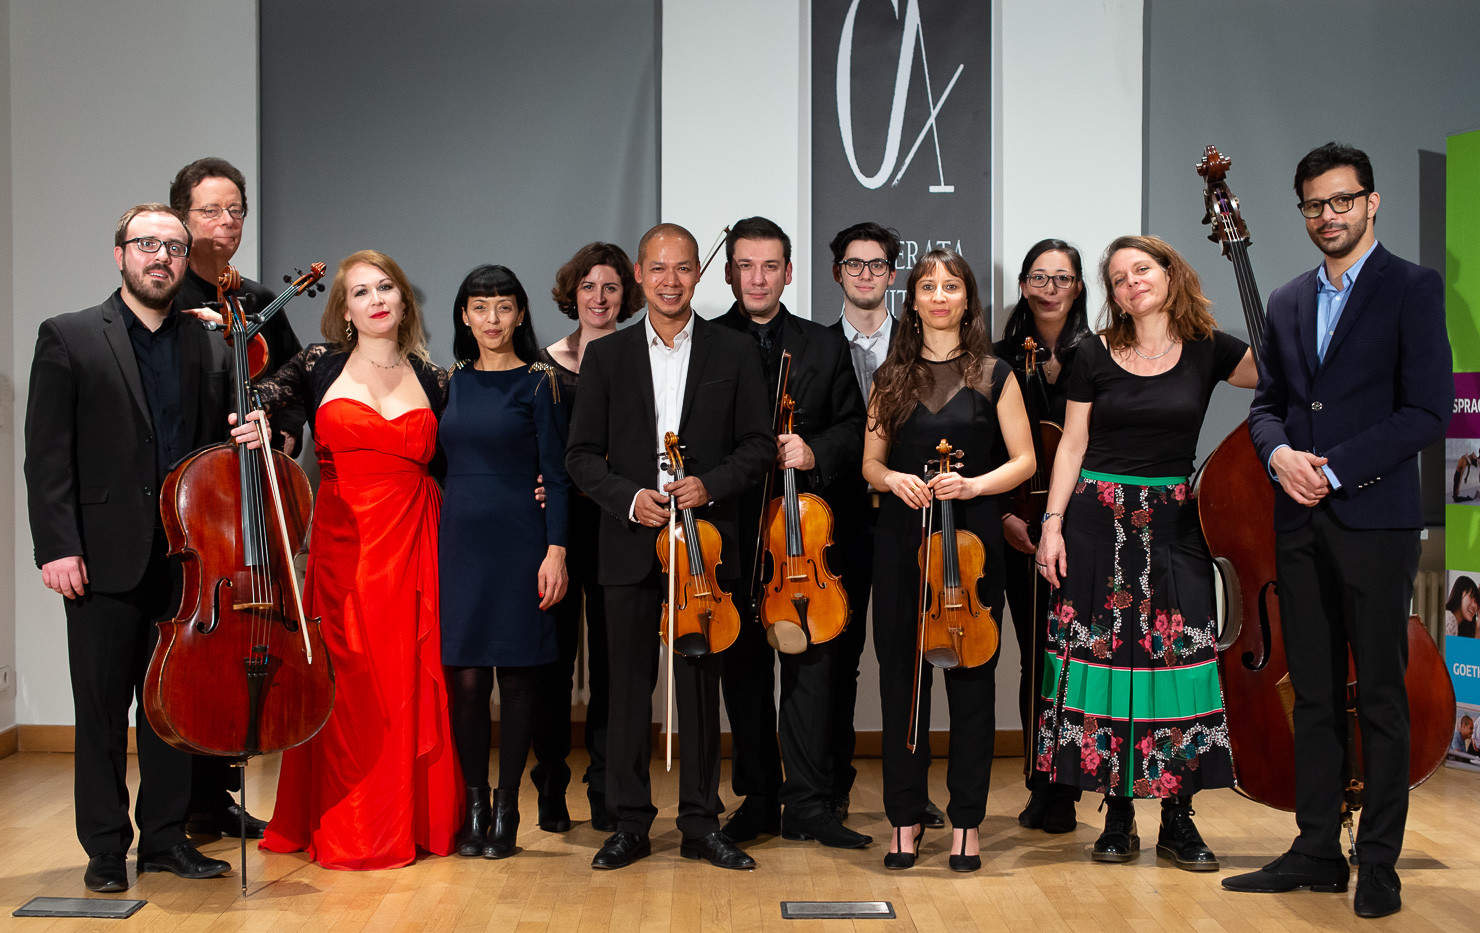 CAMERATA-AQ-OR-2019-WEB-2710.jpg